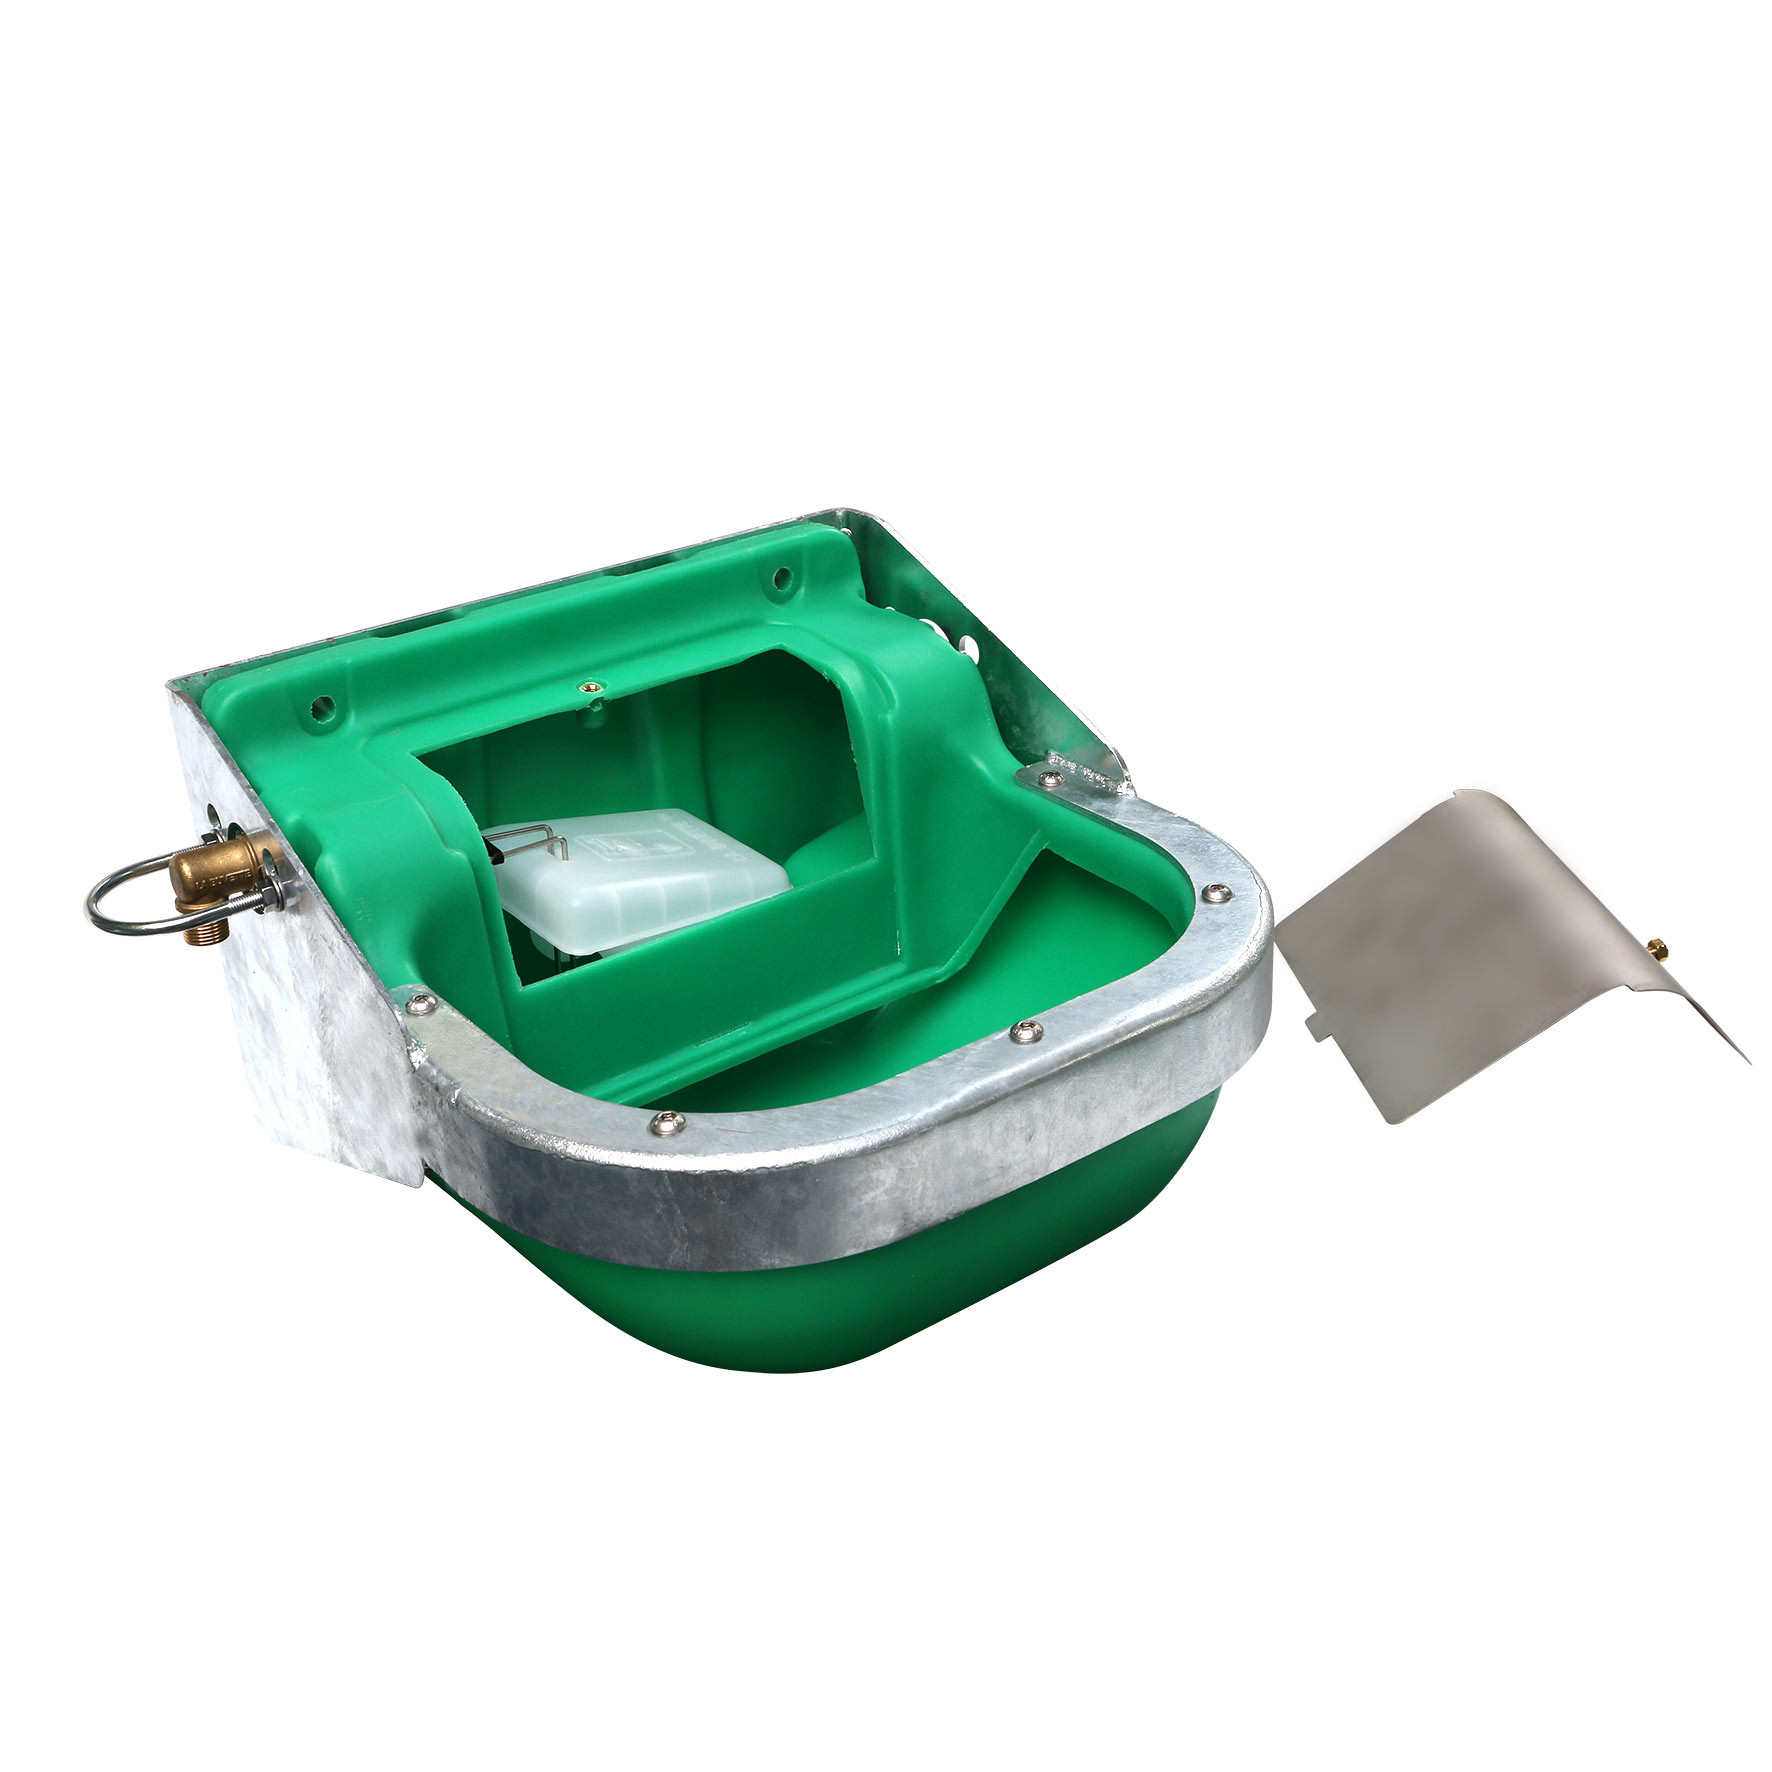 LAC50 Large drinking trough with float valve